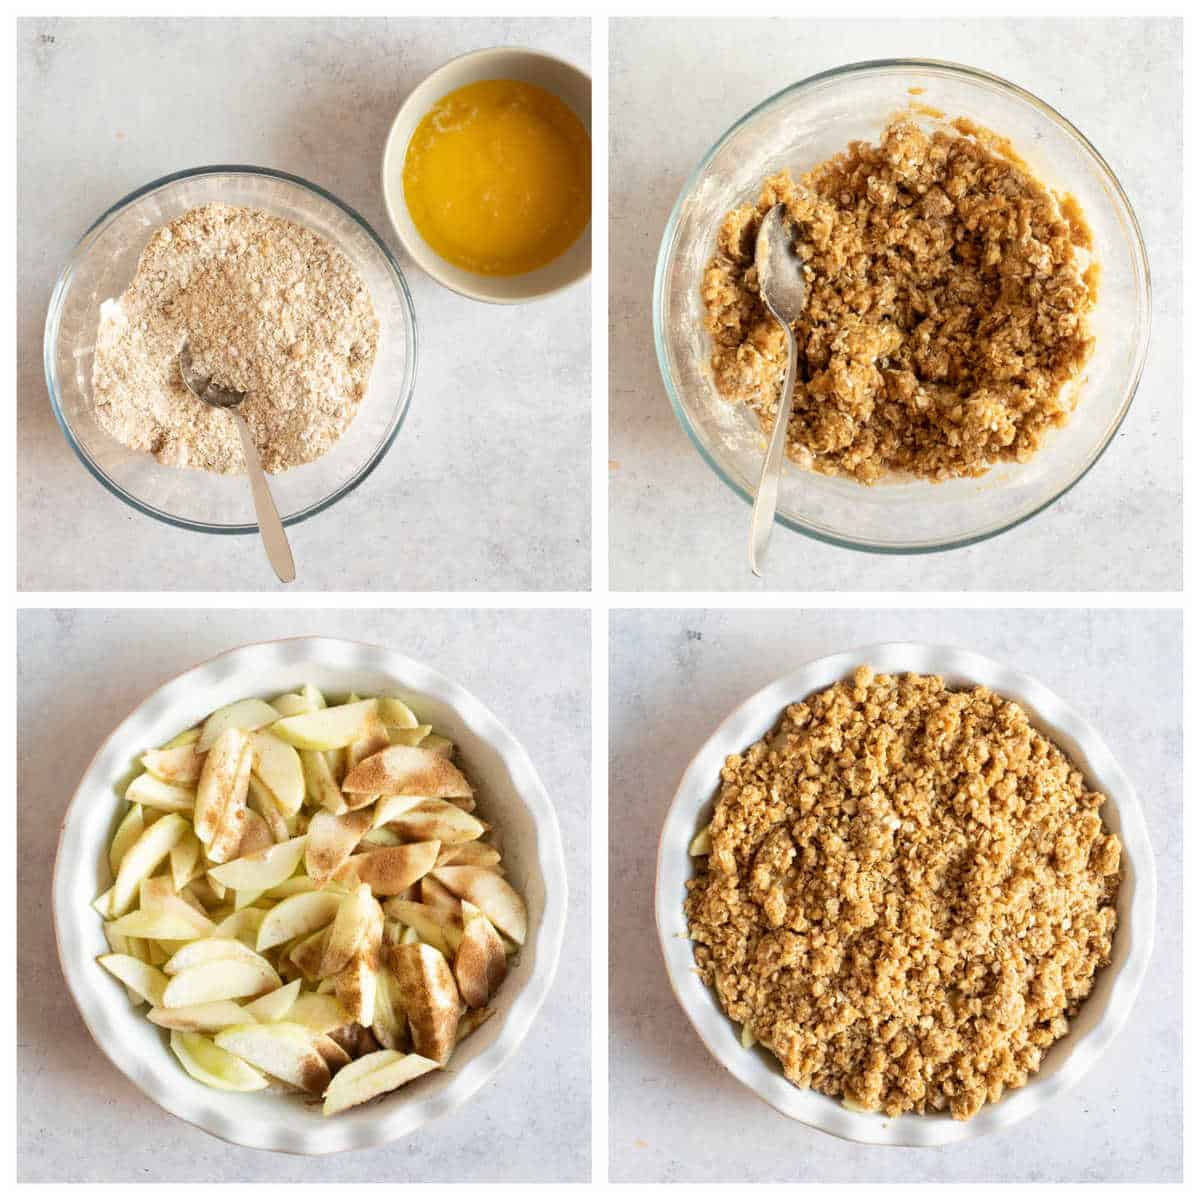 Step by step photo instructions for making the easy apple crumble recipe.